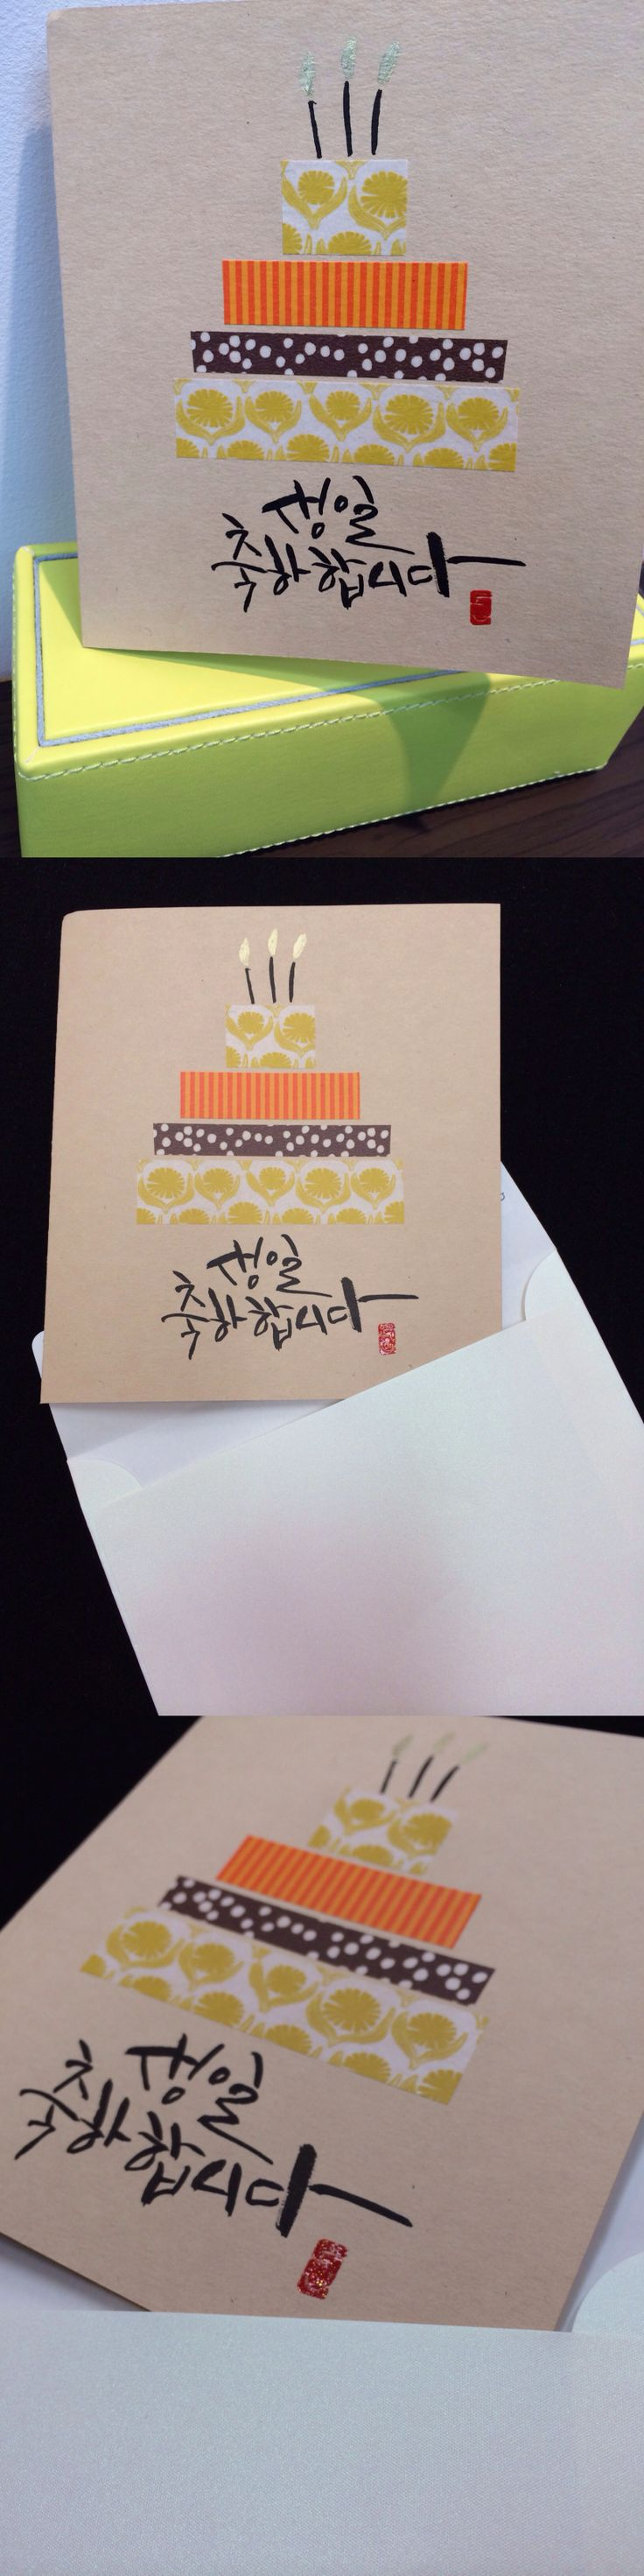 Calligraphy by Byulsam - Happy Birthday Card DIY